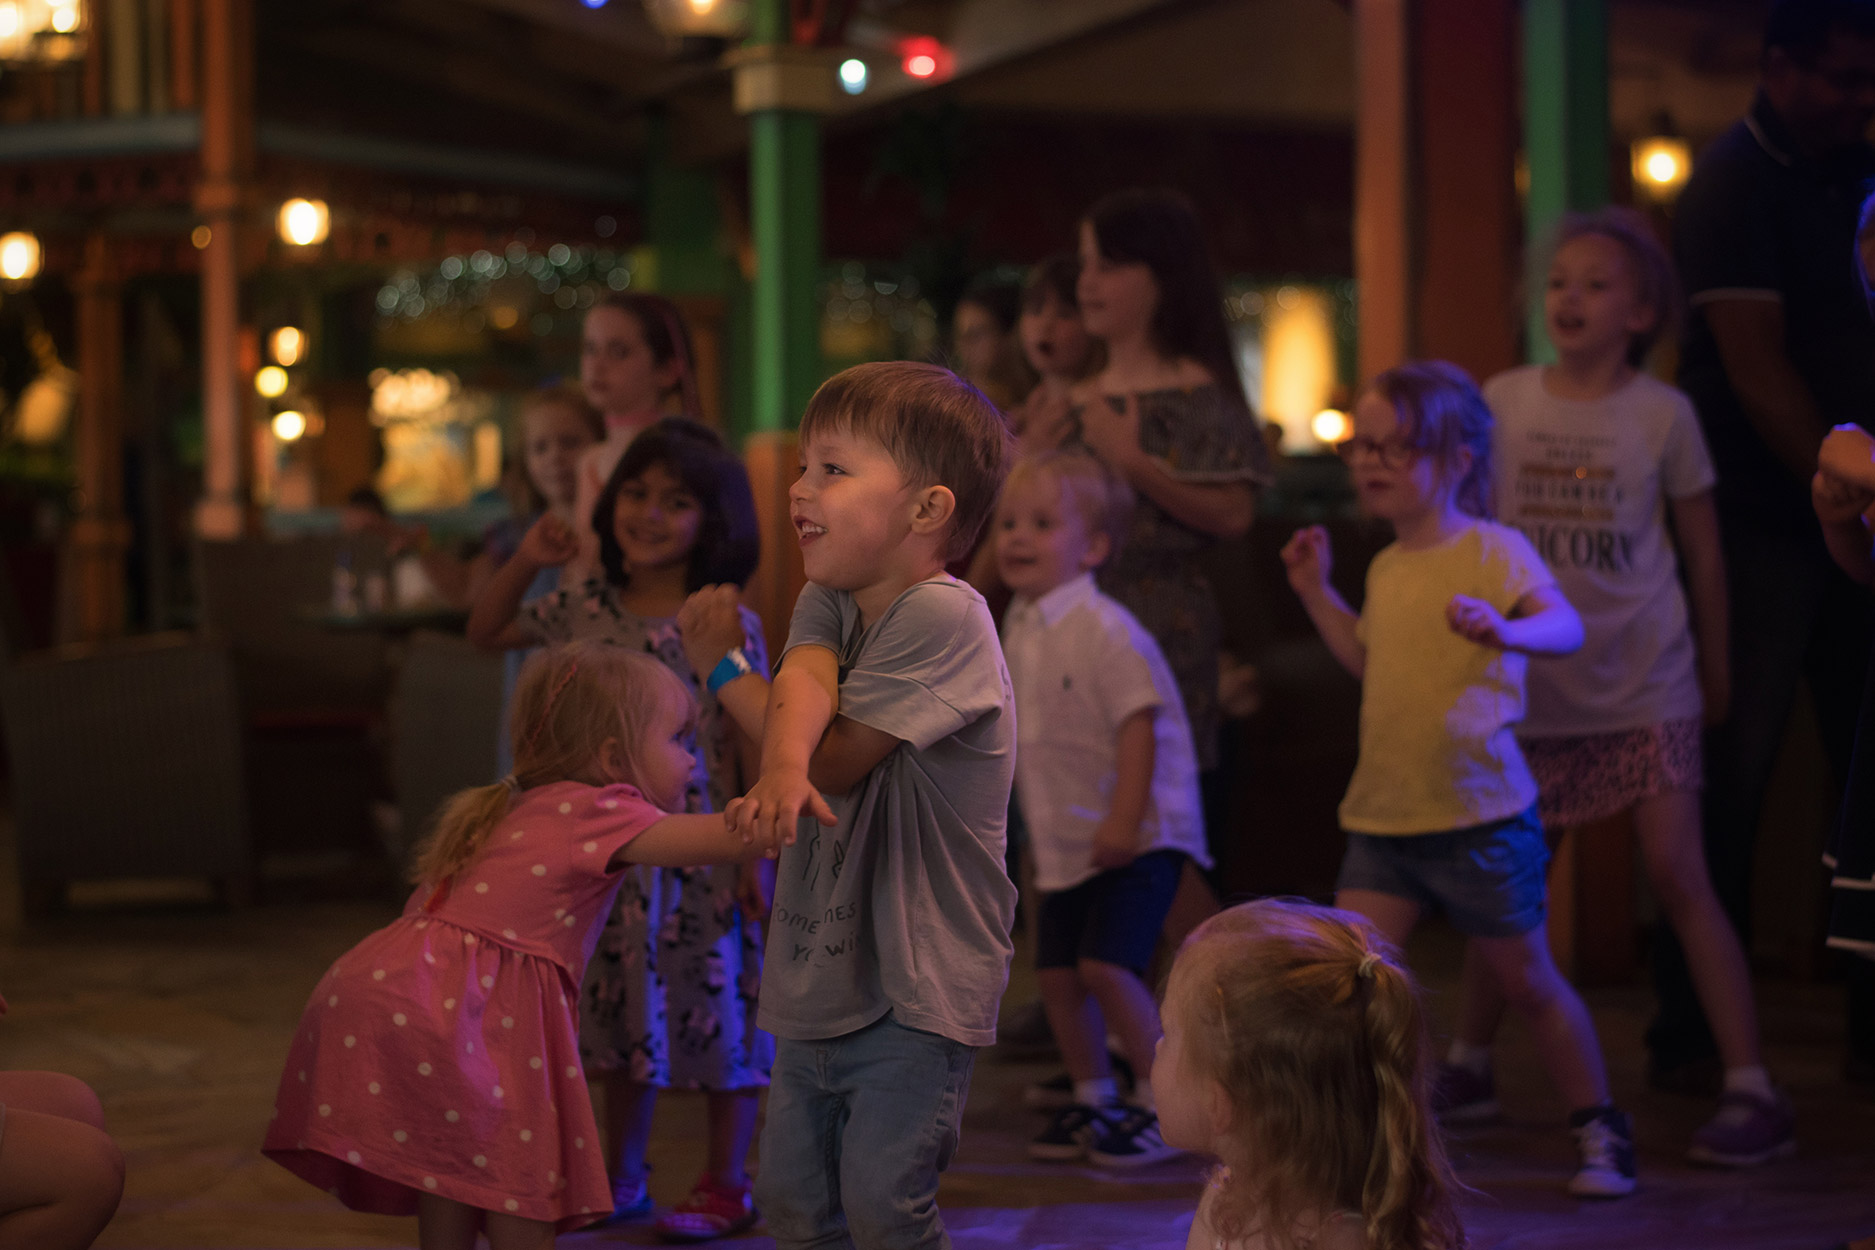 Pre-schooler wearing Bonnie Mob rainbow denim jacket dancing in the Splash Landings Hotel at Alton Towers Resort